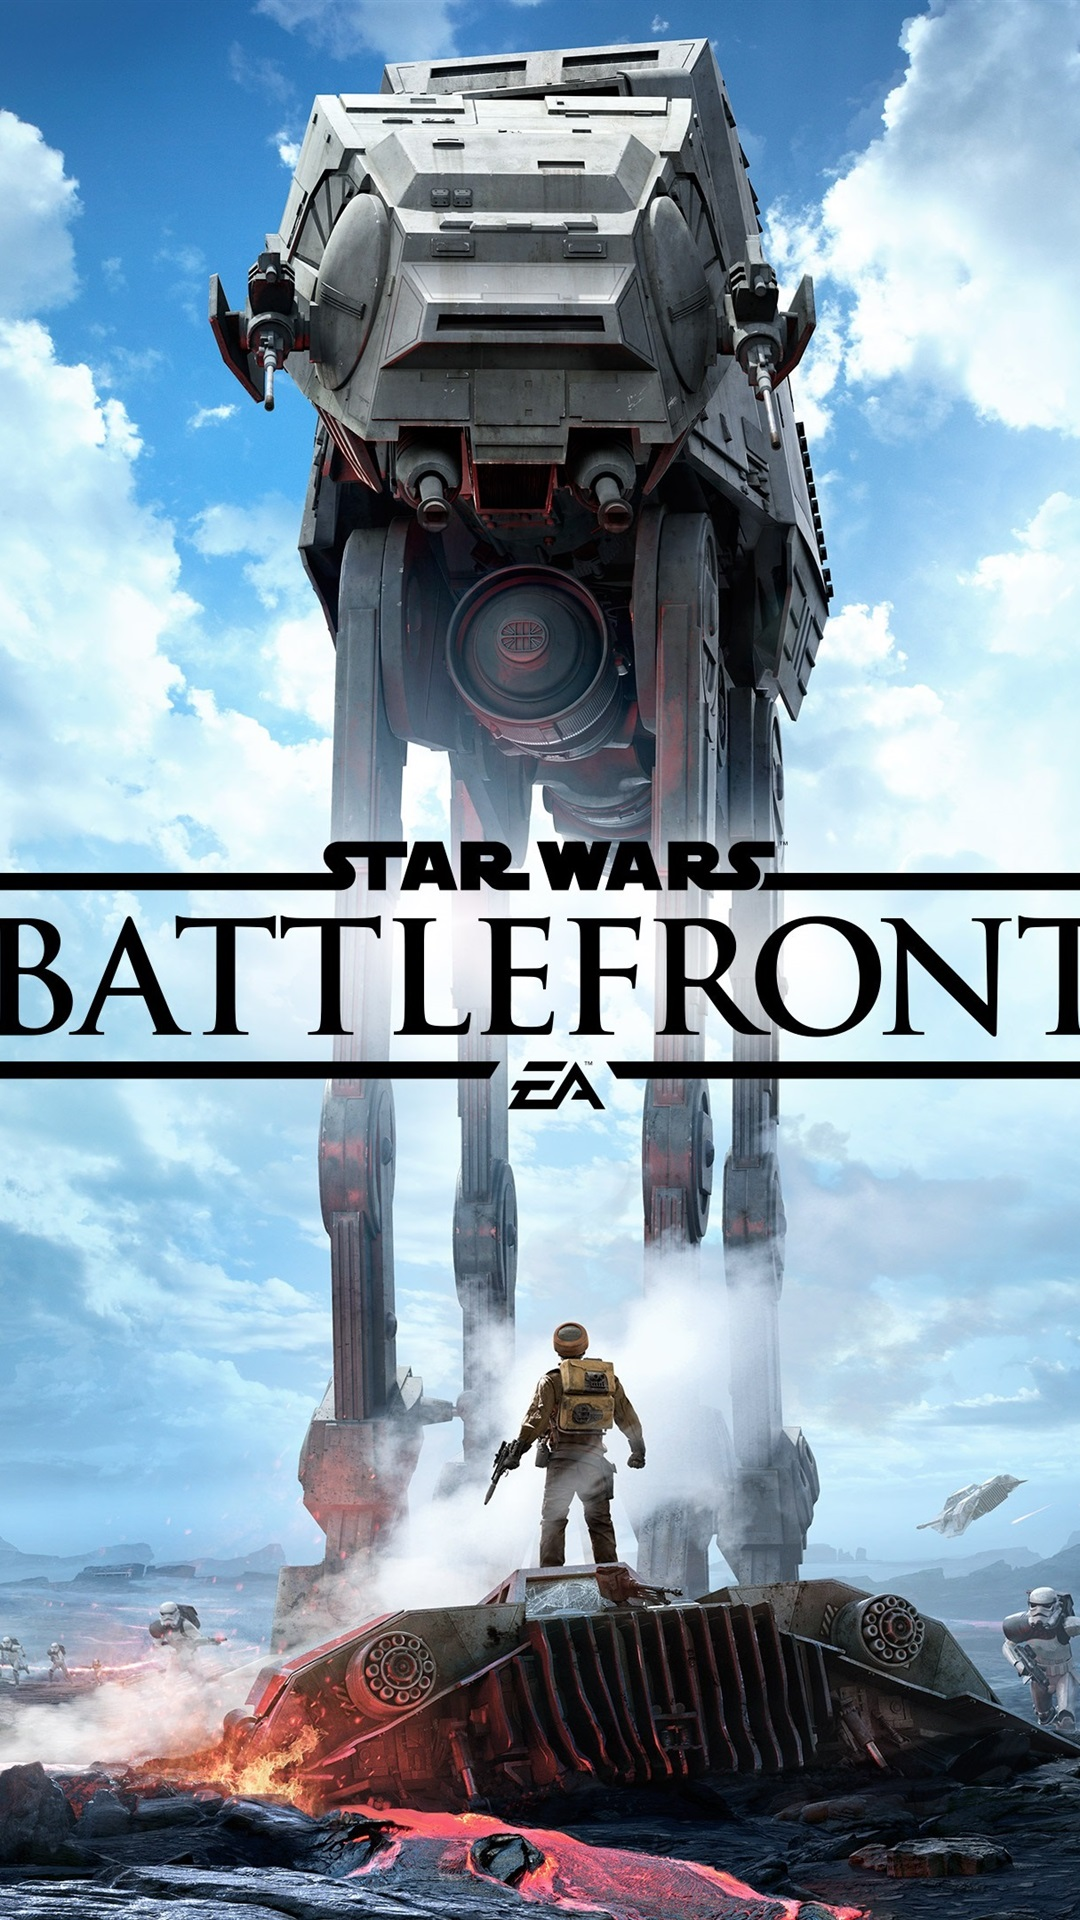 Star Wars Battlefront Ea Games 1080x1920 Iphone 8 7 6 6s Plus Wallpaper Background Picture Image